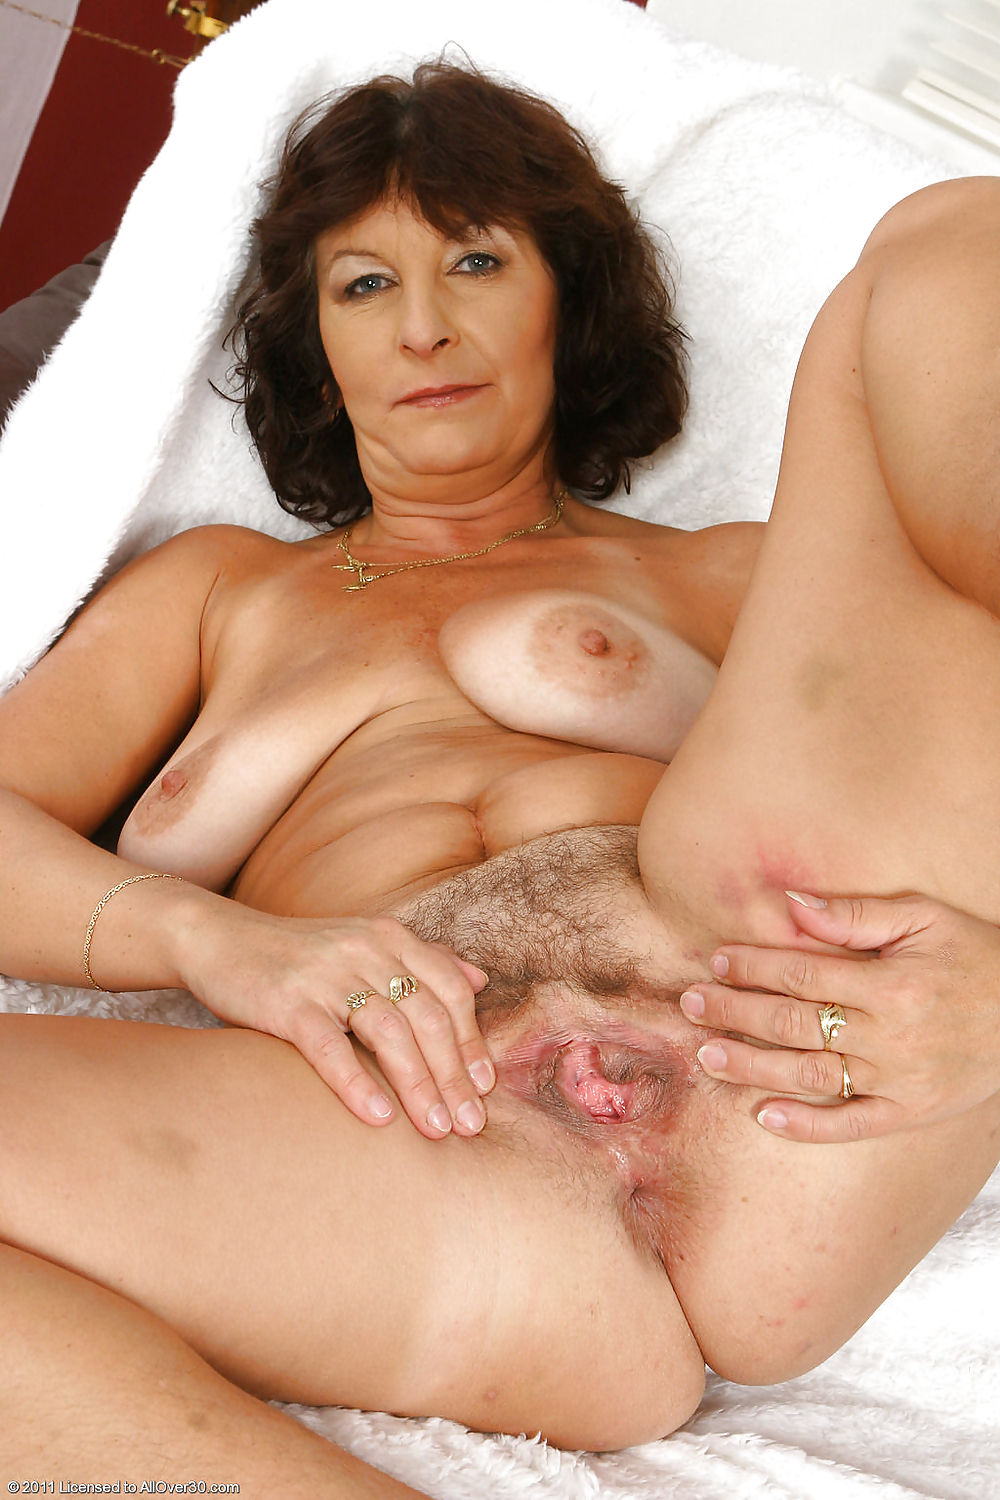 Www.mom pale nude really